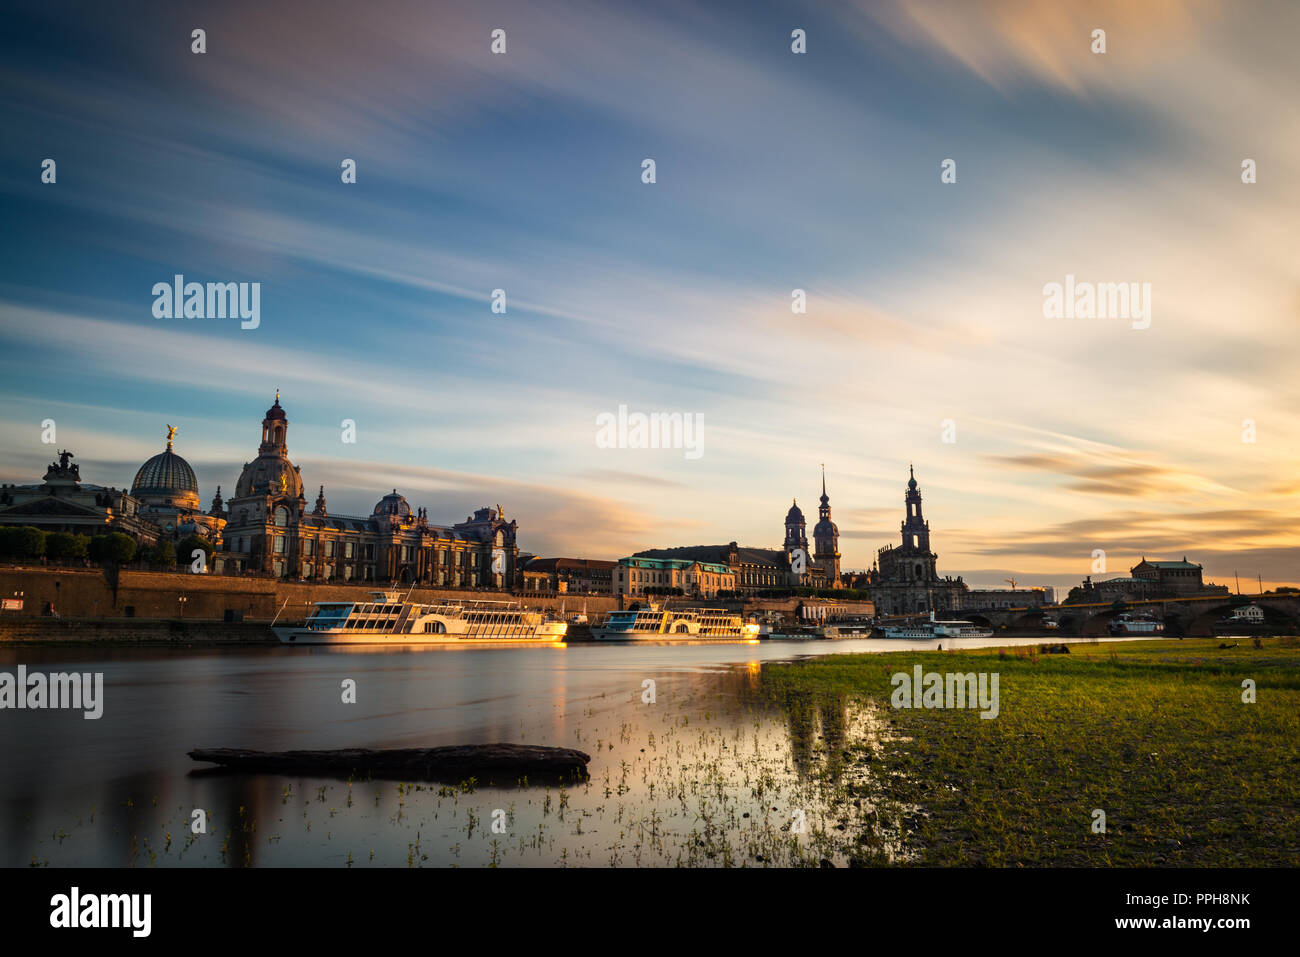 View of the oldtown of Dresden from the Neustädter Elbufer, with some of its main buildings to be recognised, including the Frauenkirche. Stock Photo